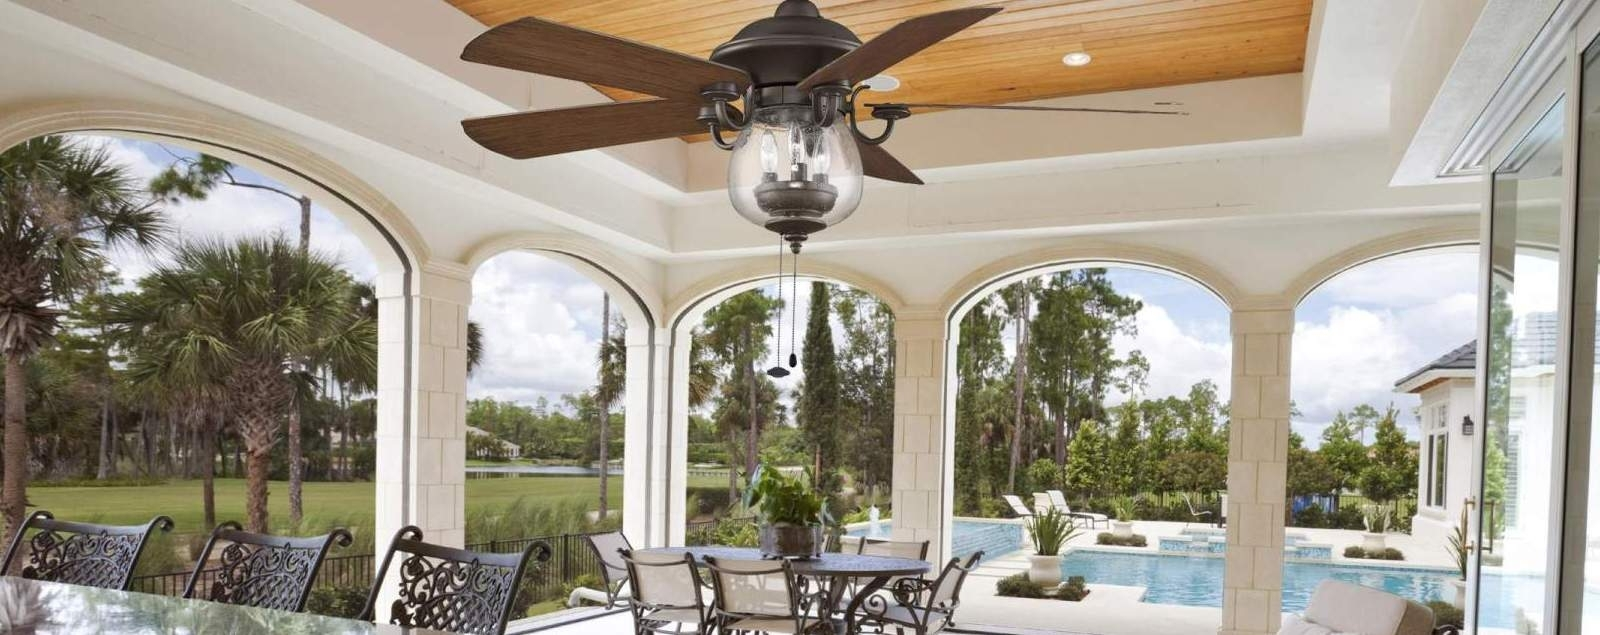 Popular Outdoor Ceiling Fans – Shop Wet, Dry, And Damp Rated Outdoor Fans Inside Rust Proof Outdoor Ceiling Fans (View 6 of 20)